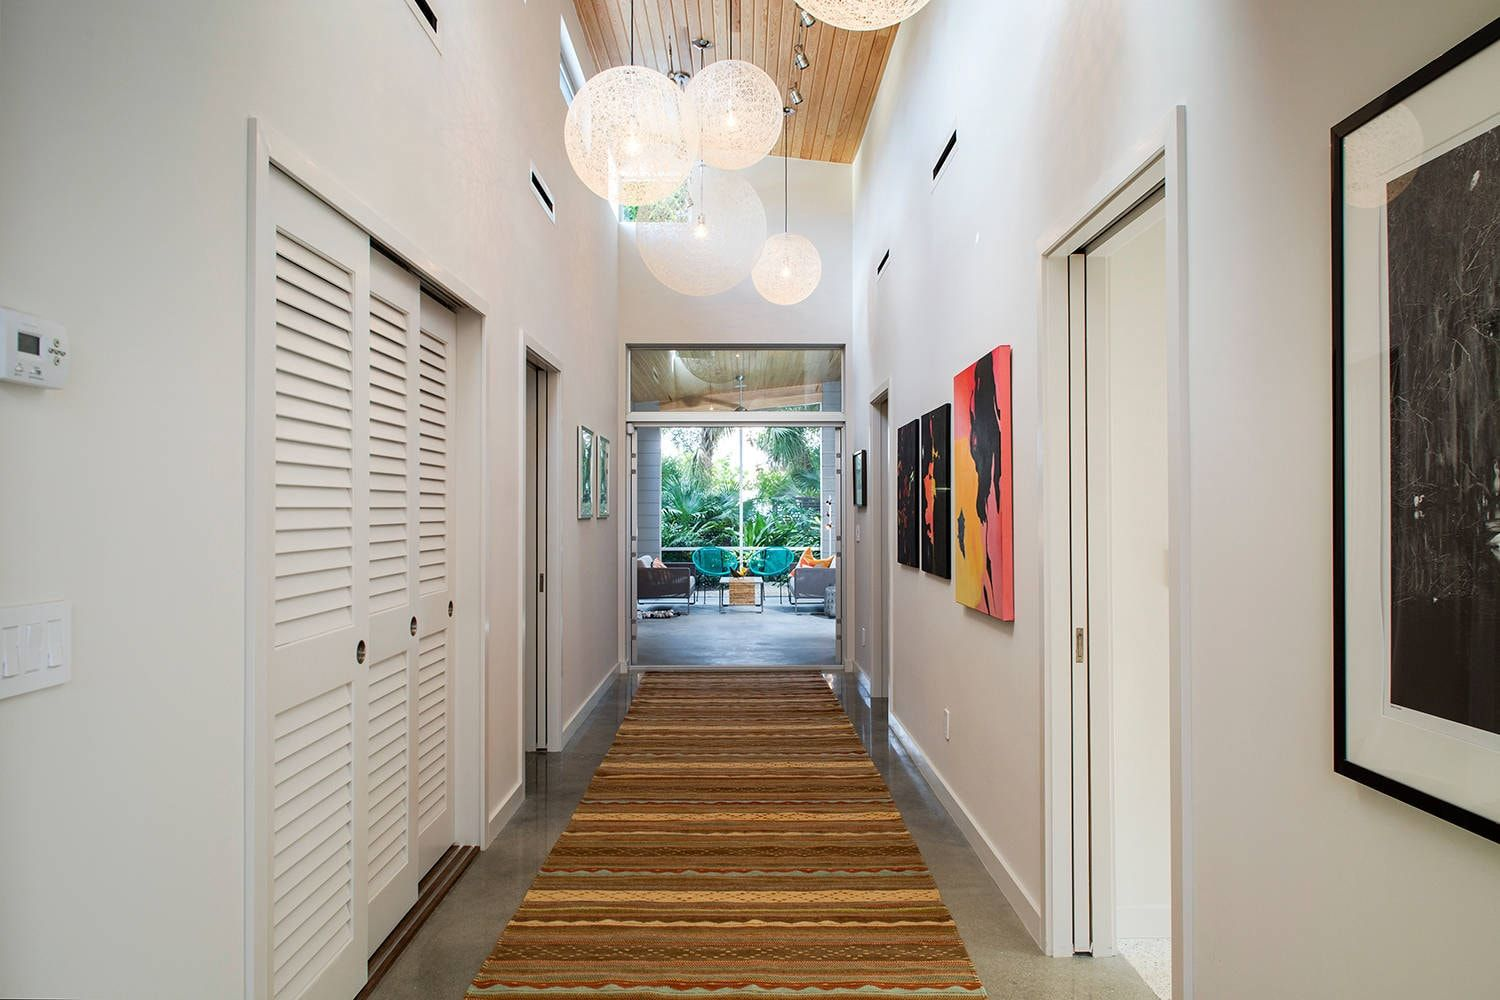 White matted walls and planked surfaces of the hall closet